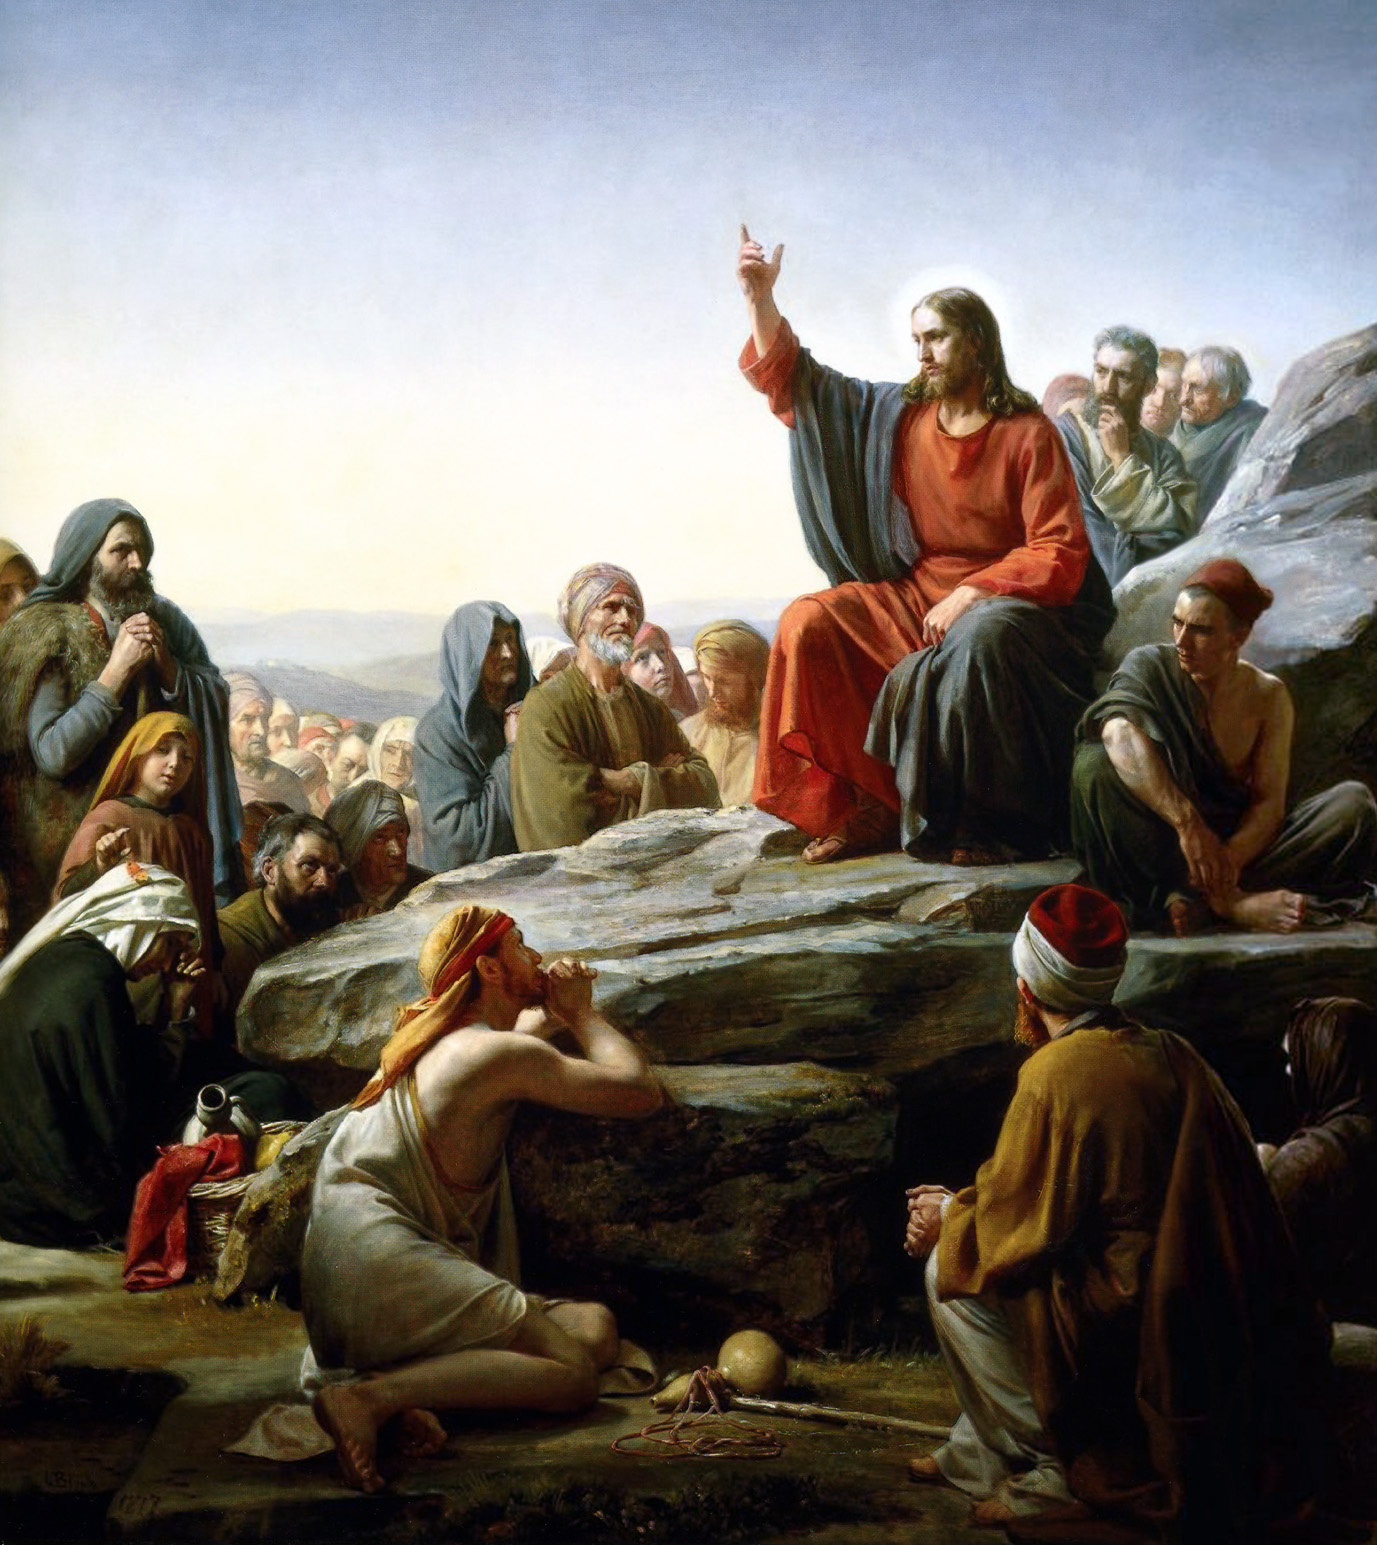 the sermon on the mount and Sermon on the mount jesus discipleship training of the apostles  introduction  the sermon on the mount in matthew chapters 5-7 is jesus' first discipleship training of his new followers the usual approach we take to a teaching passage such as the sermon on the mount is with the expectation of building up o.